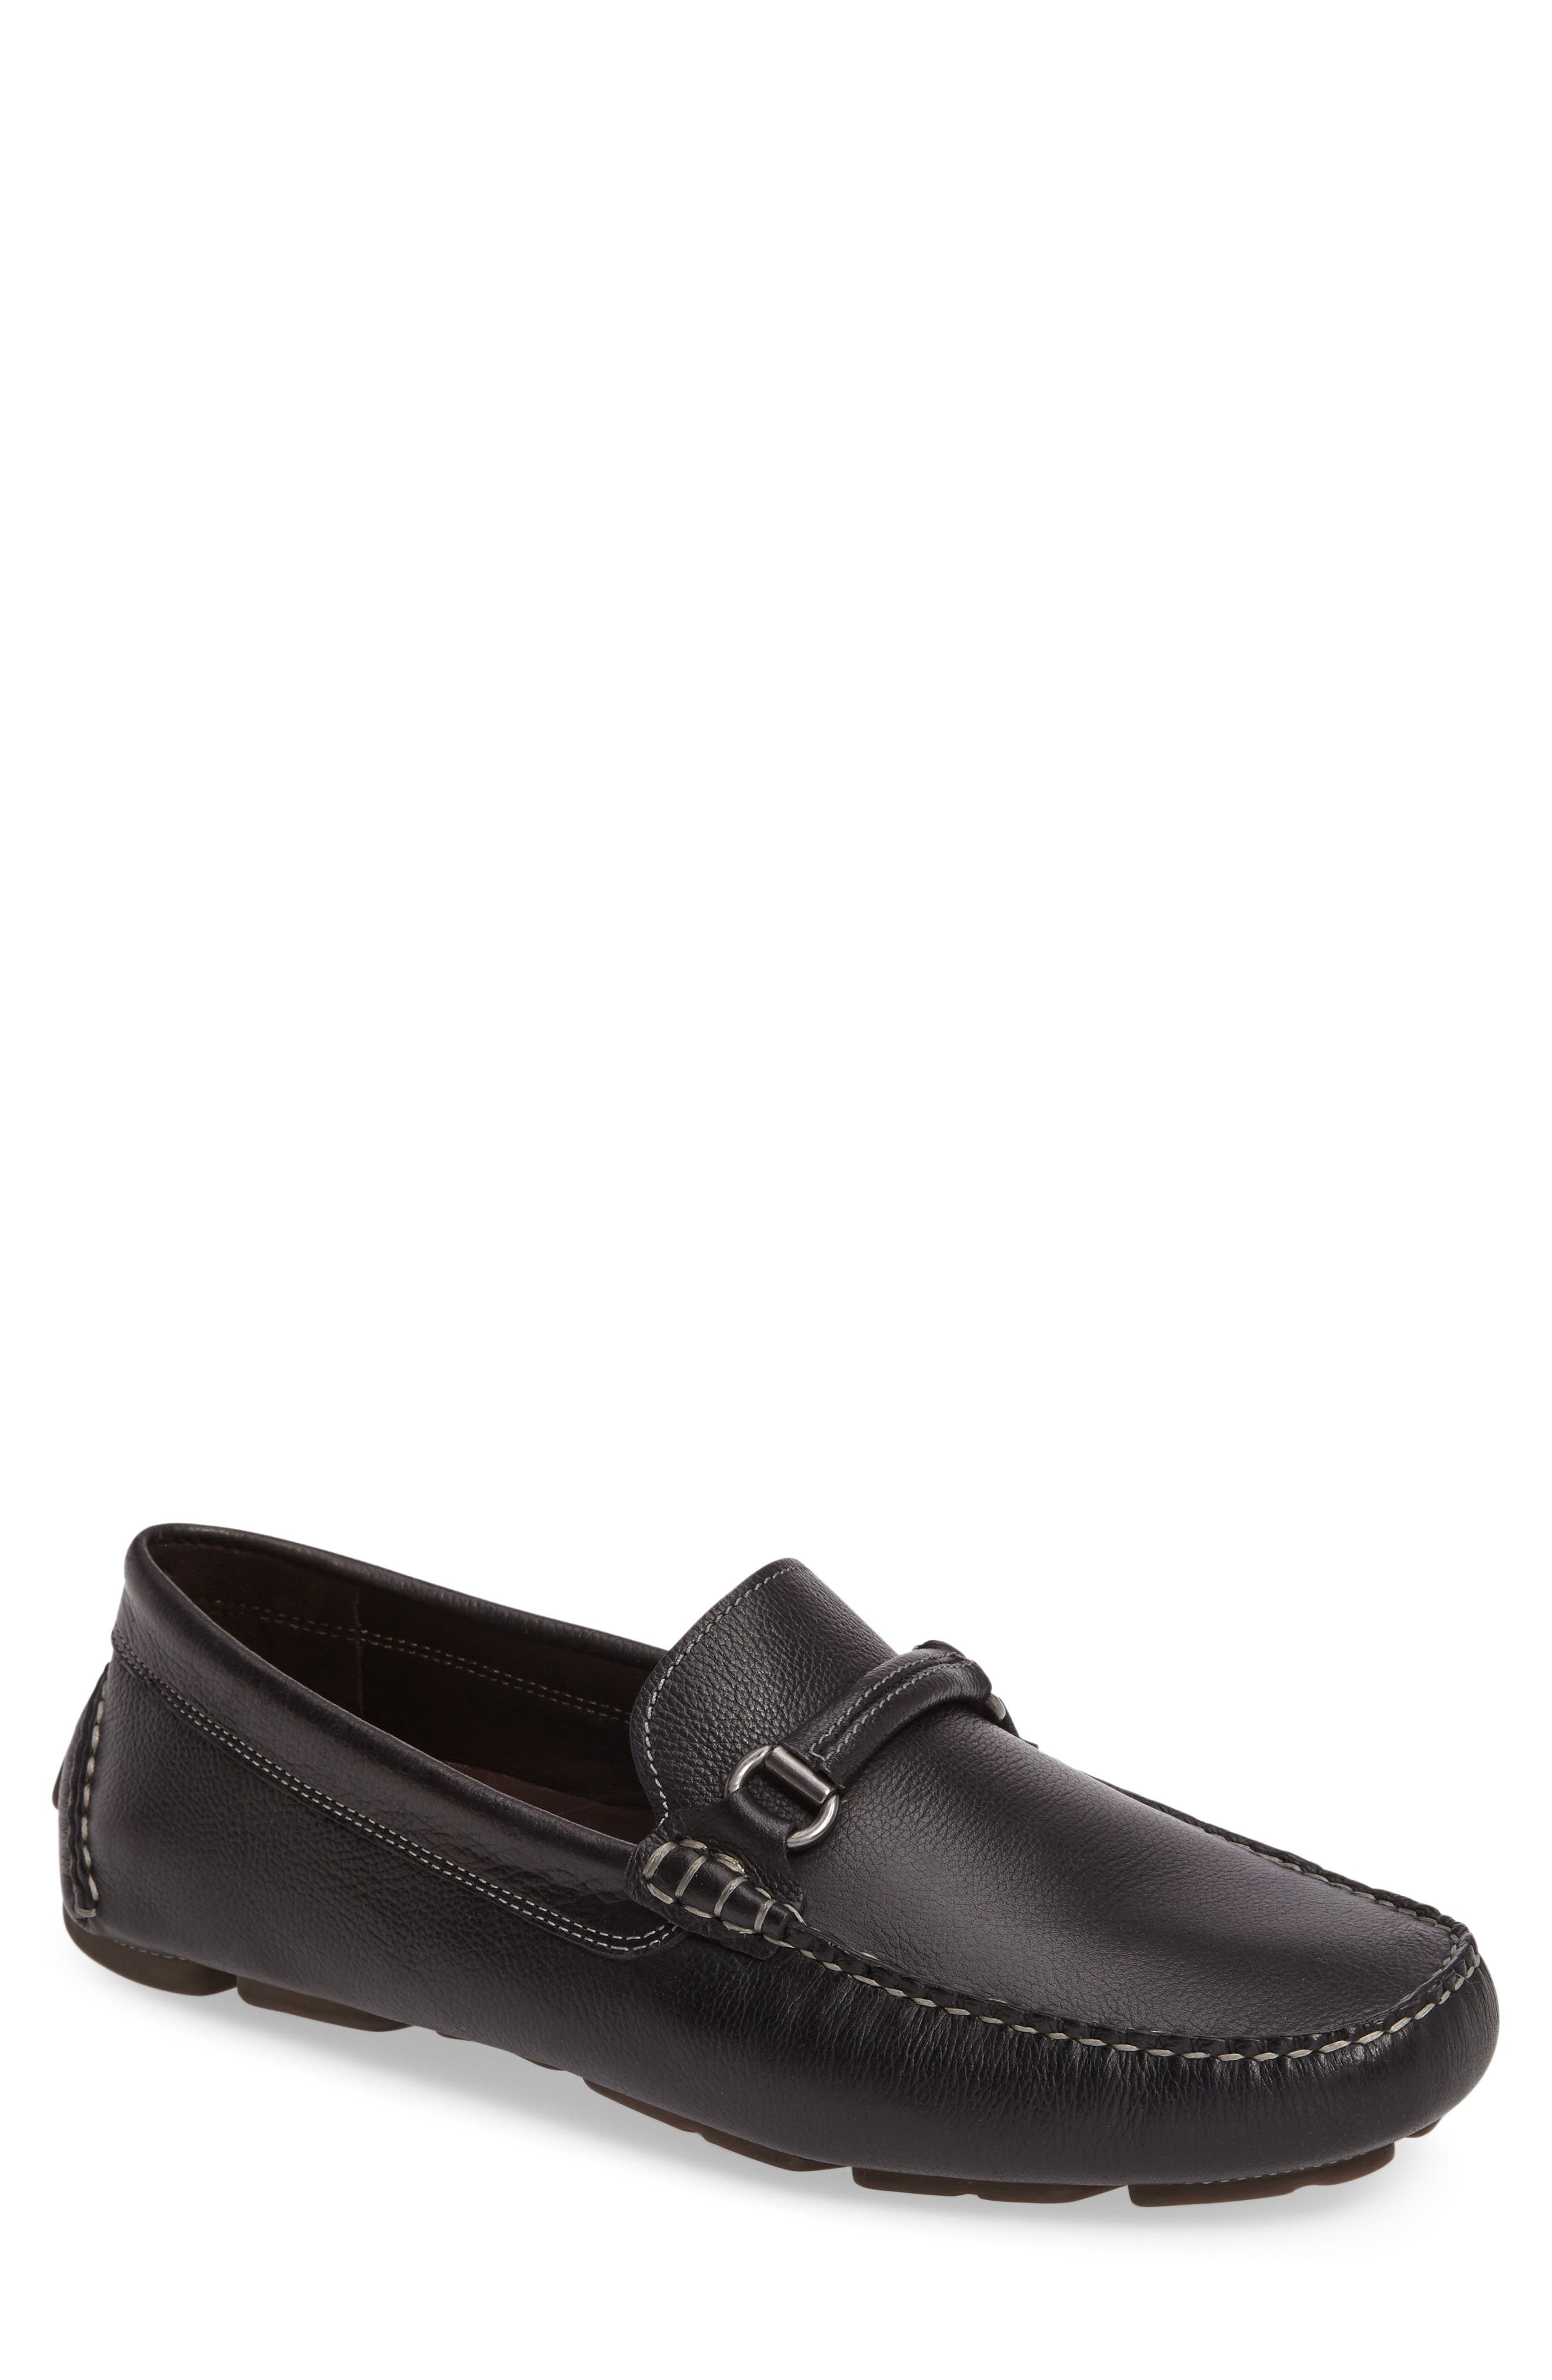 JOHNSTON & MURPHY, Gibson Bit Driving Loafer, Main thumbnail 1, color, BLACK LEATHER